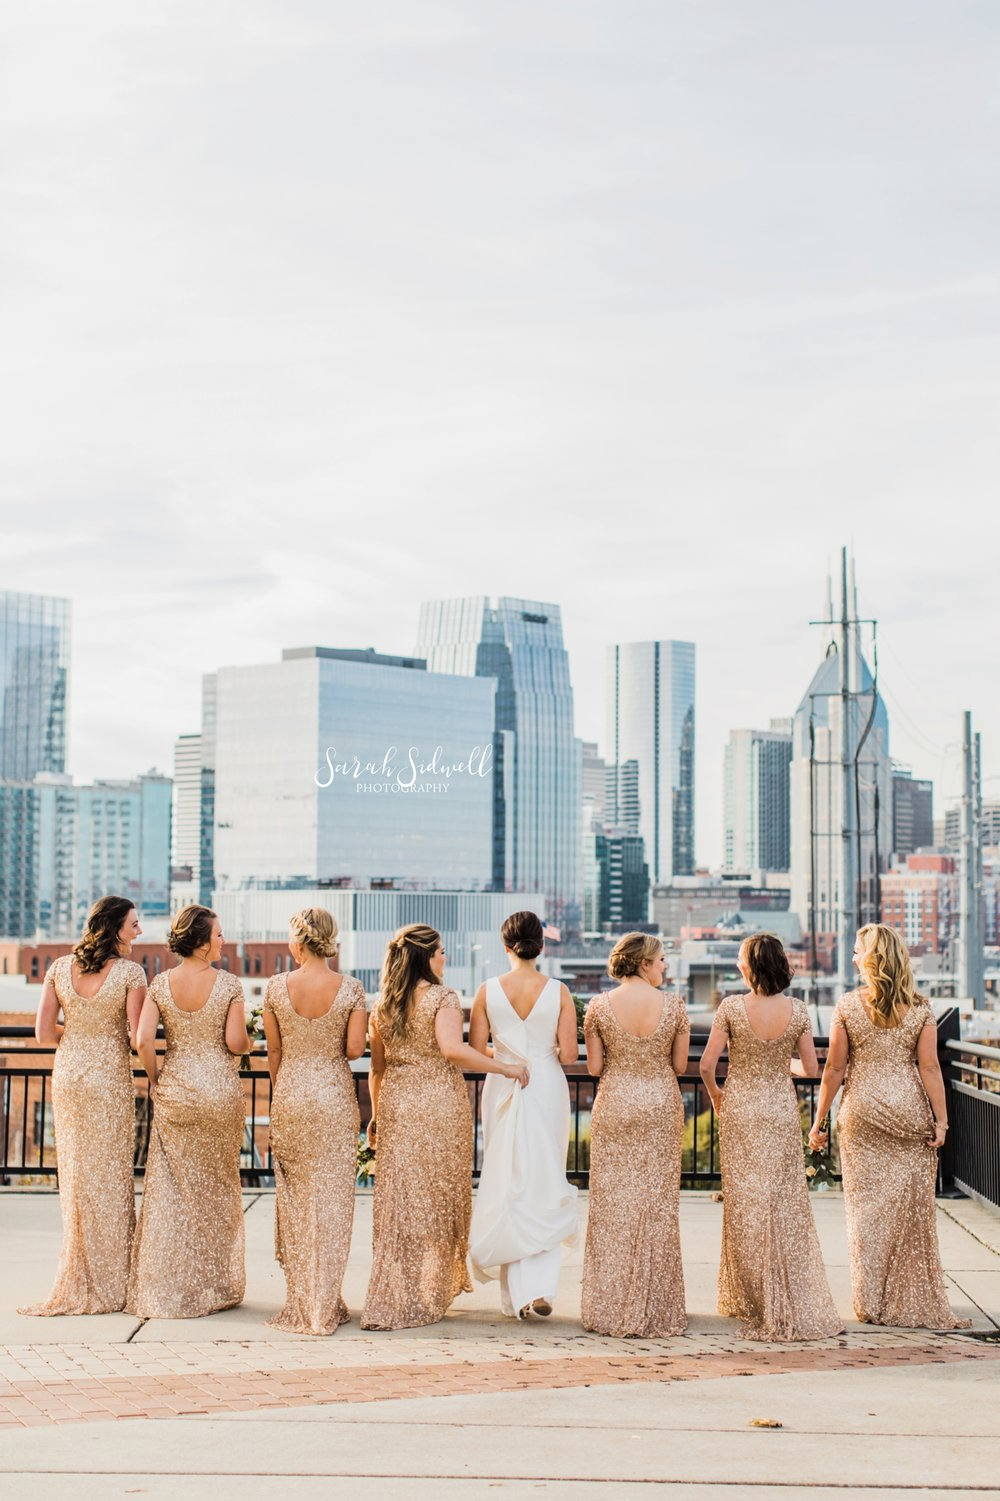 A bridal party shows off their dresses | Sarah Sidwell Photography | The Bell Tower